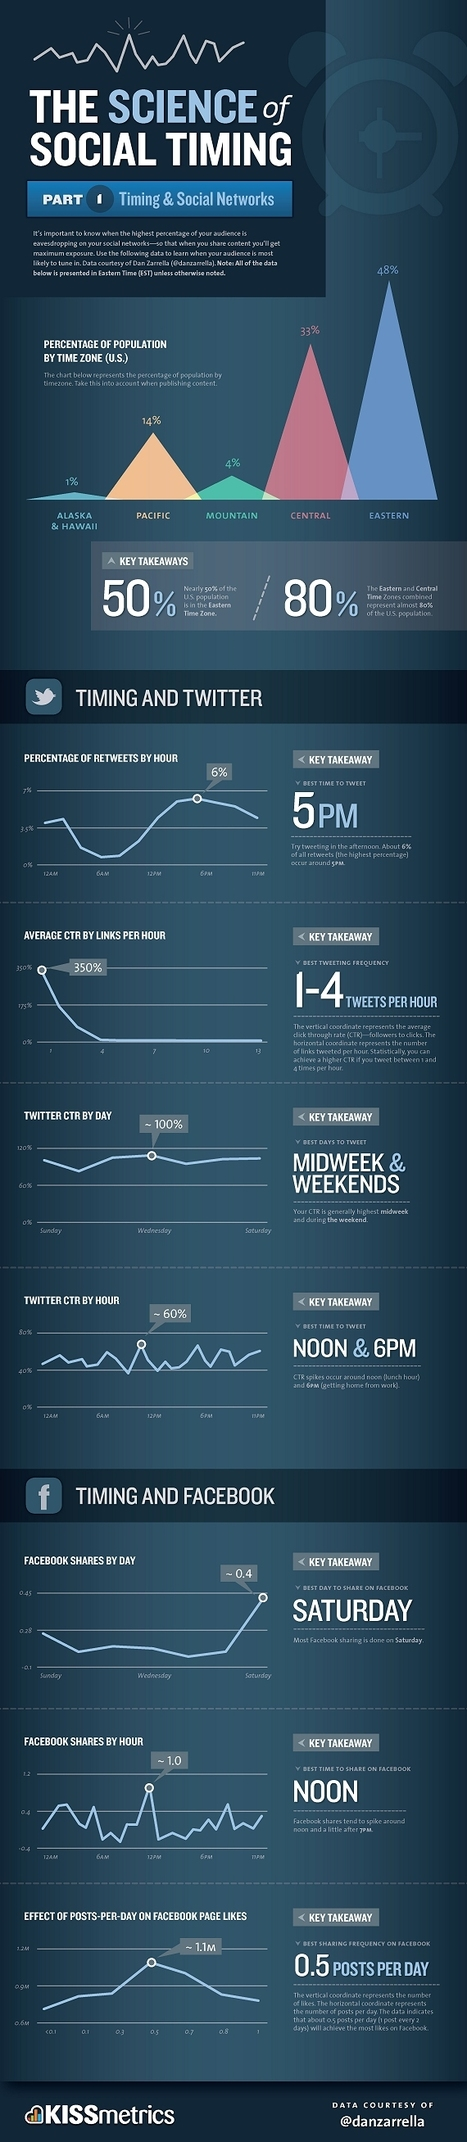 Timing Is Everything: Optimizing Social Media (Infographic) | Business 2 Community | The Social Media Scoop | Scoop.it